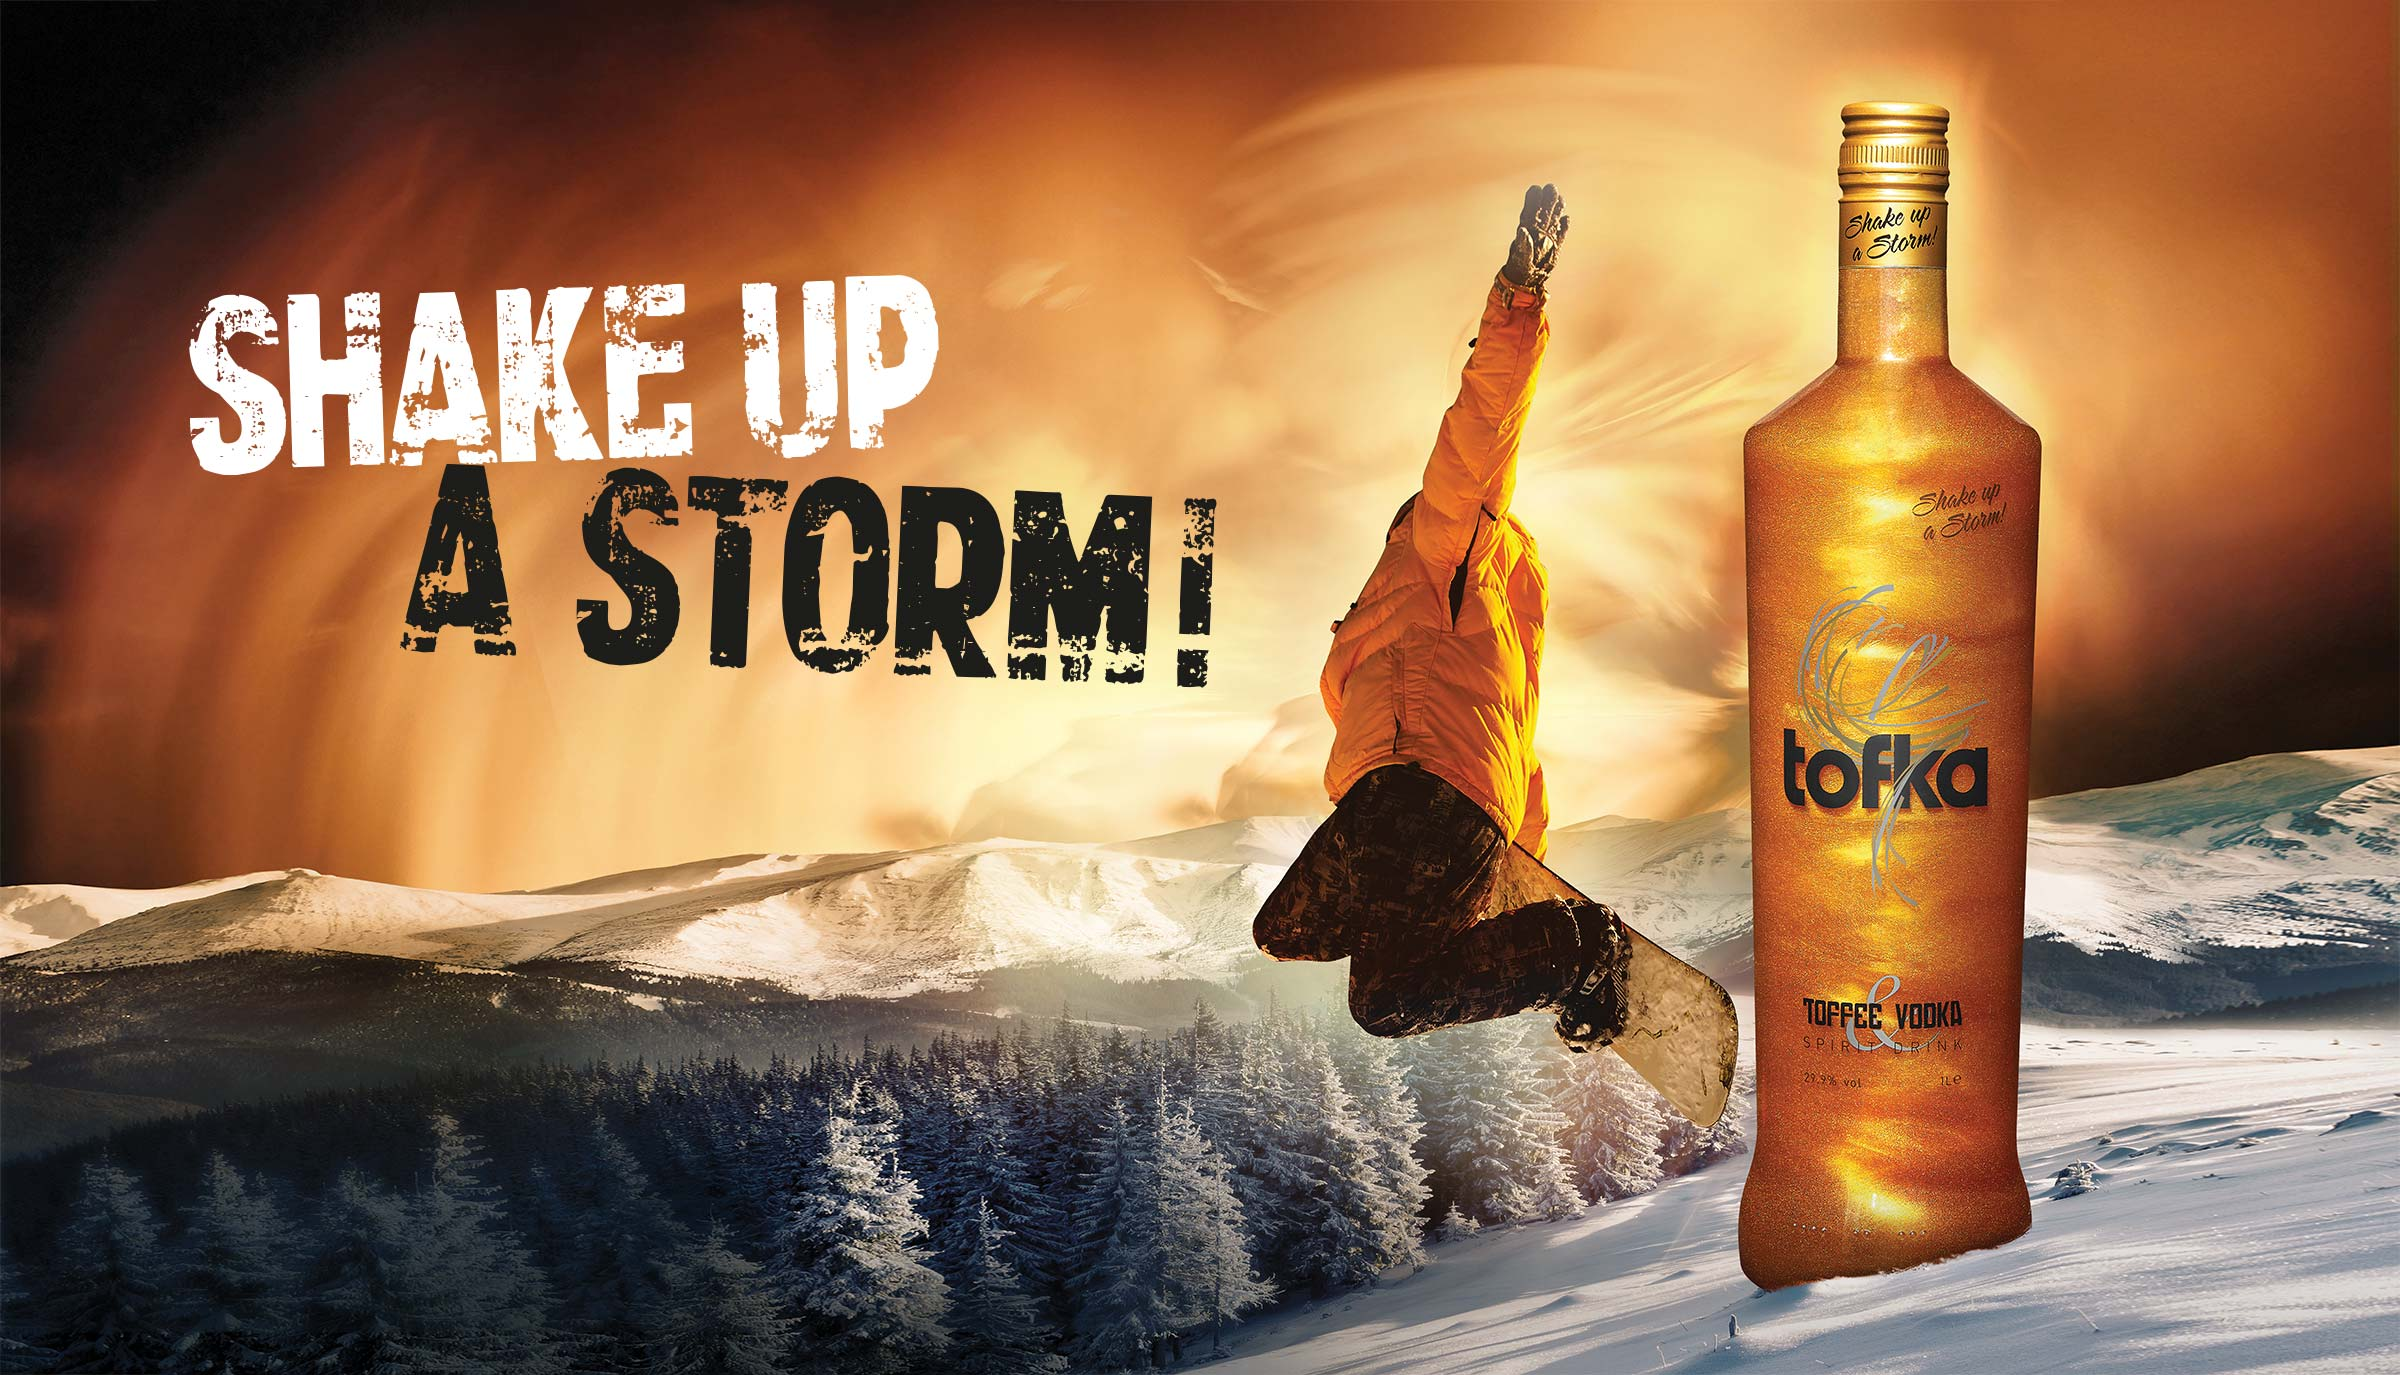 Tofka toffee vodka shake-up-a-storm